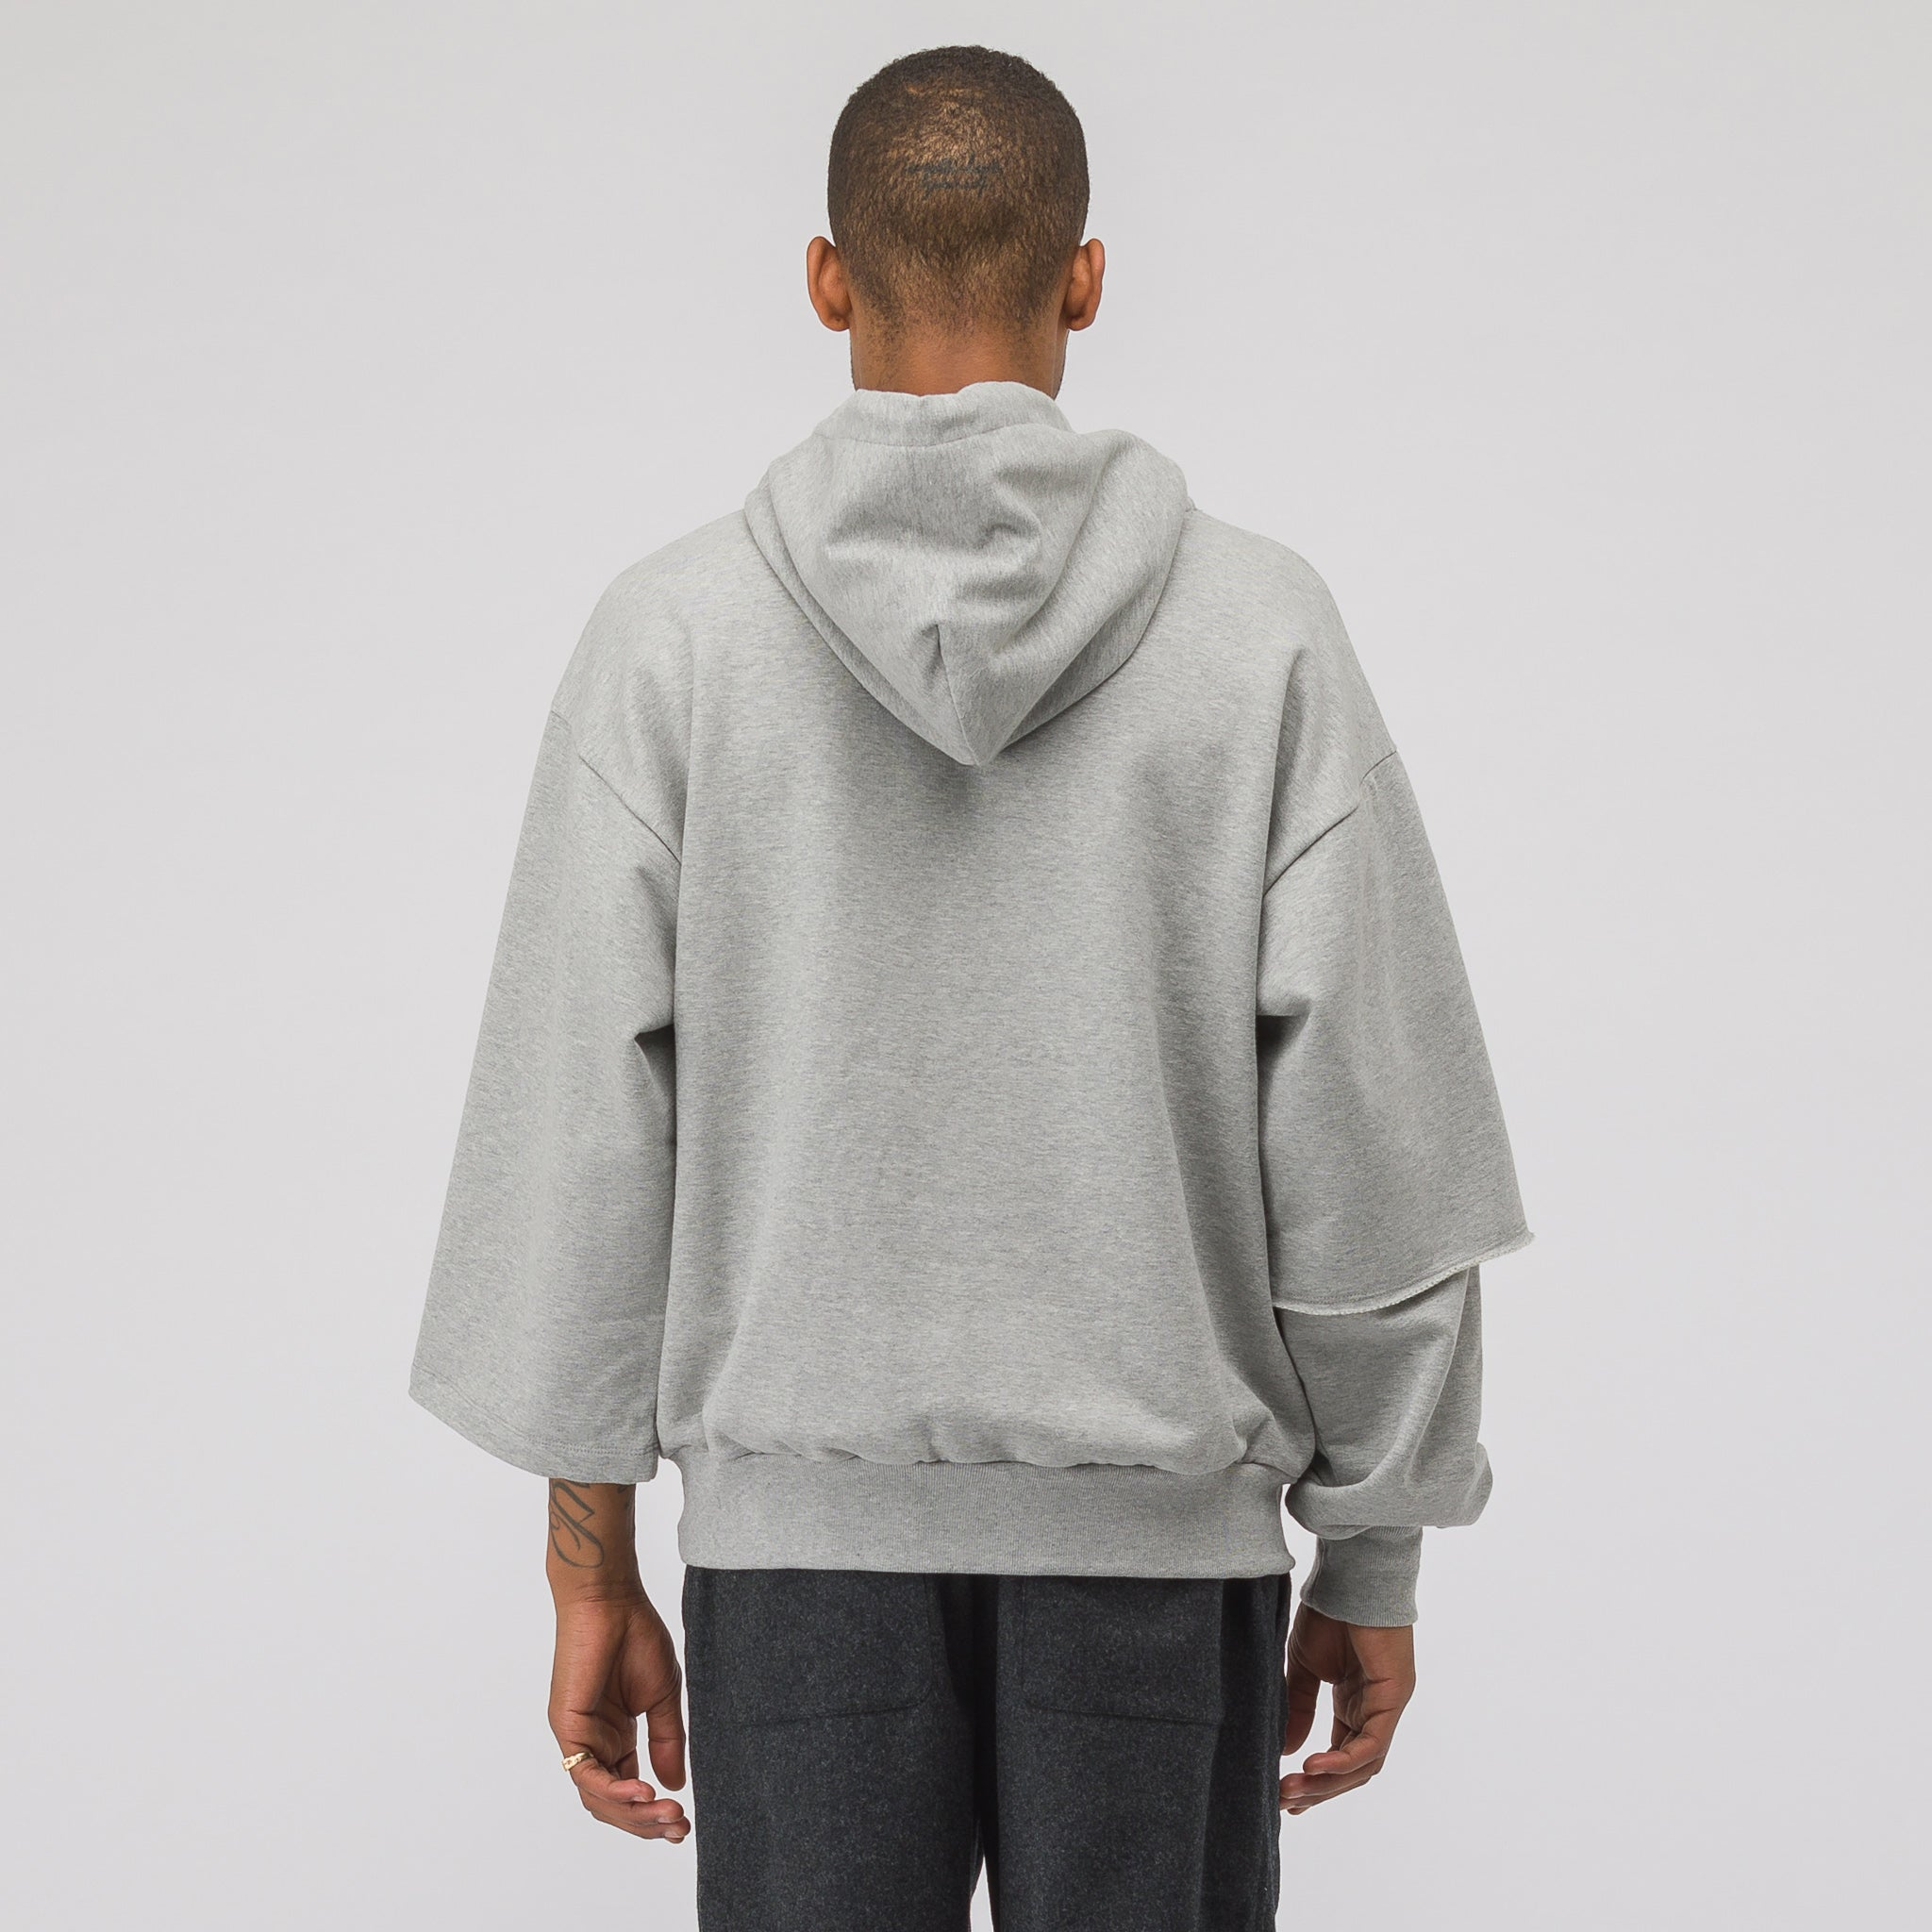 Flag Hooded Sweatshirt in Grey